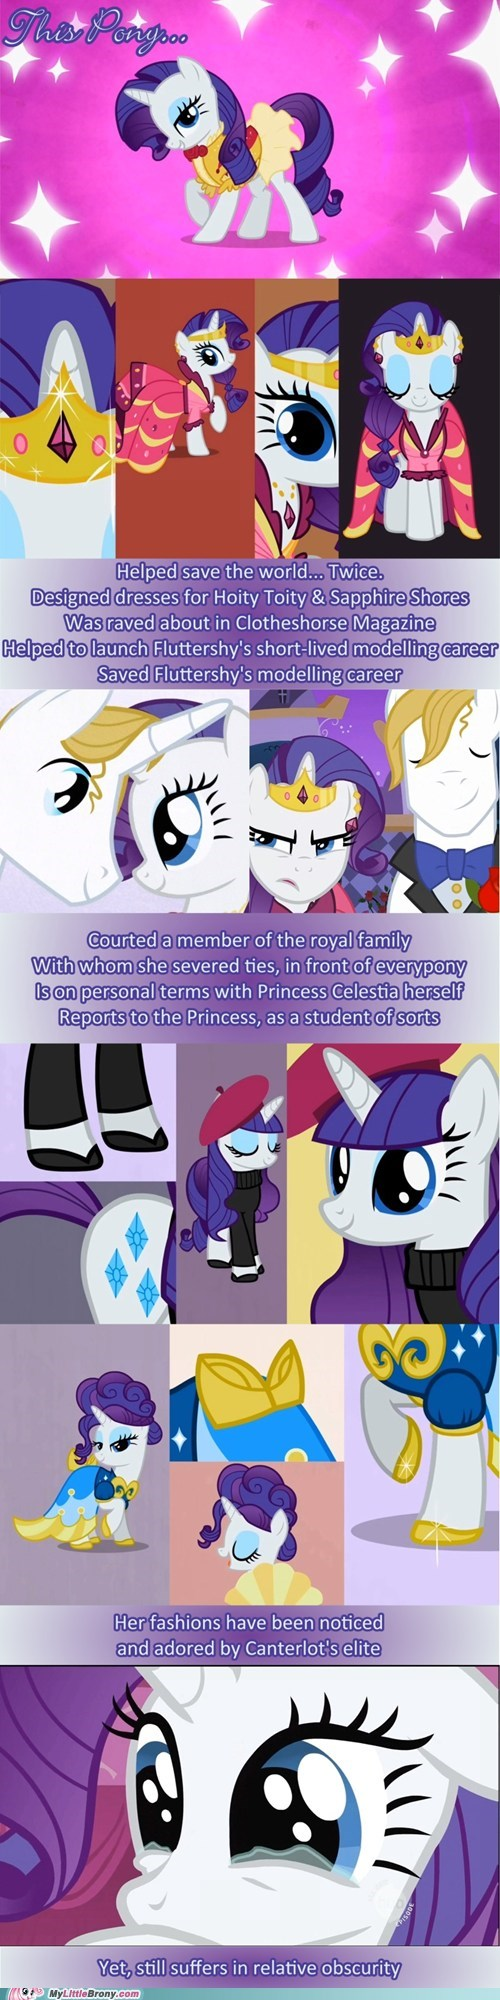 How is it she has to introduce herself to everypony?